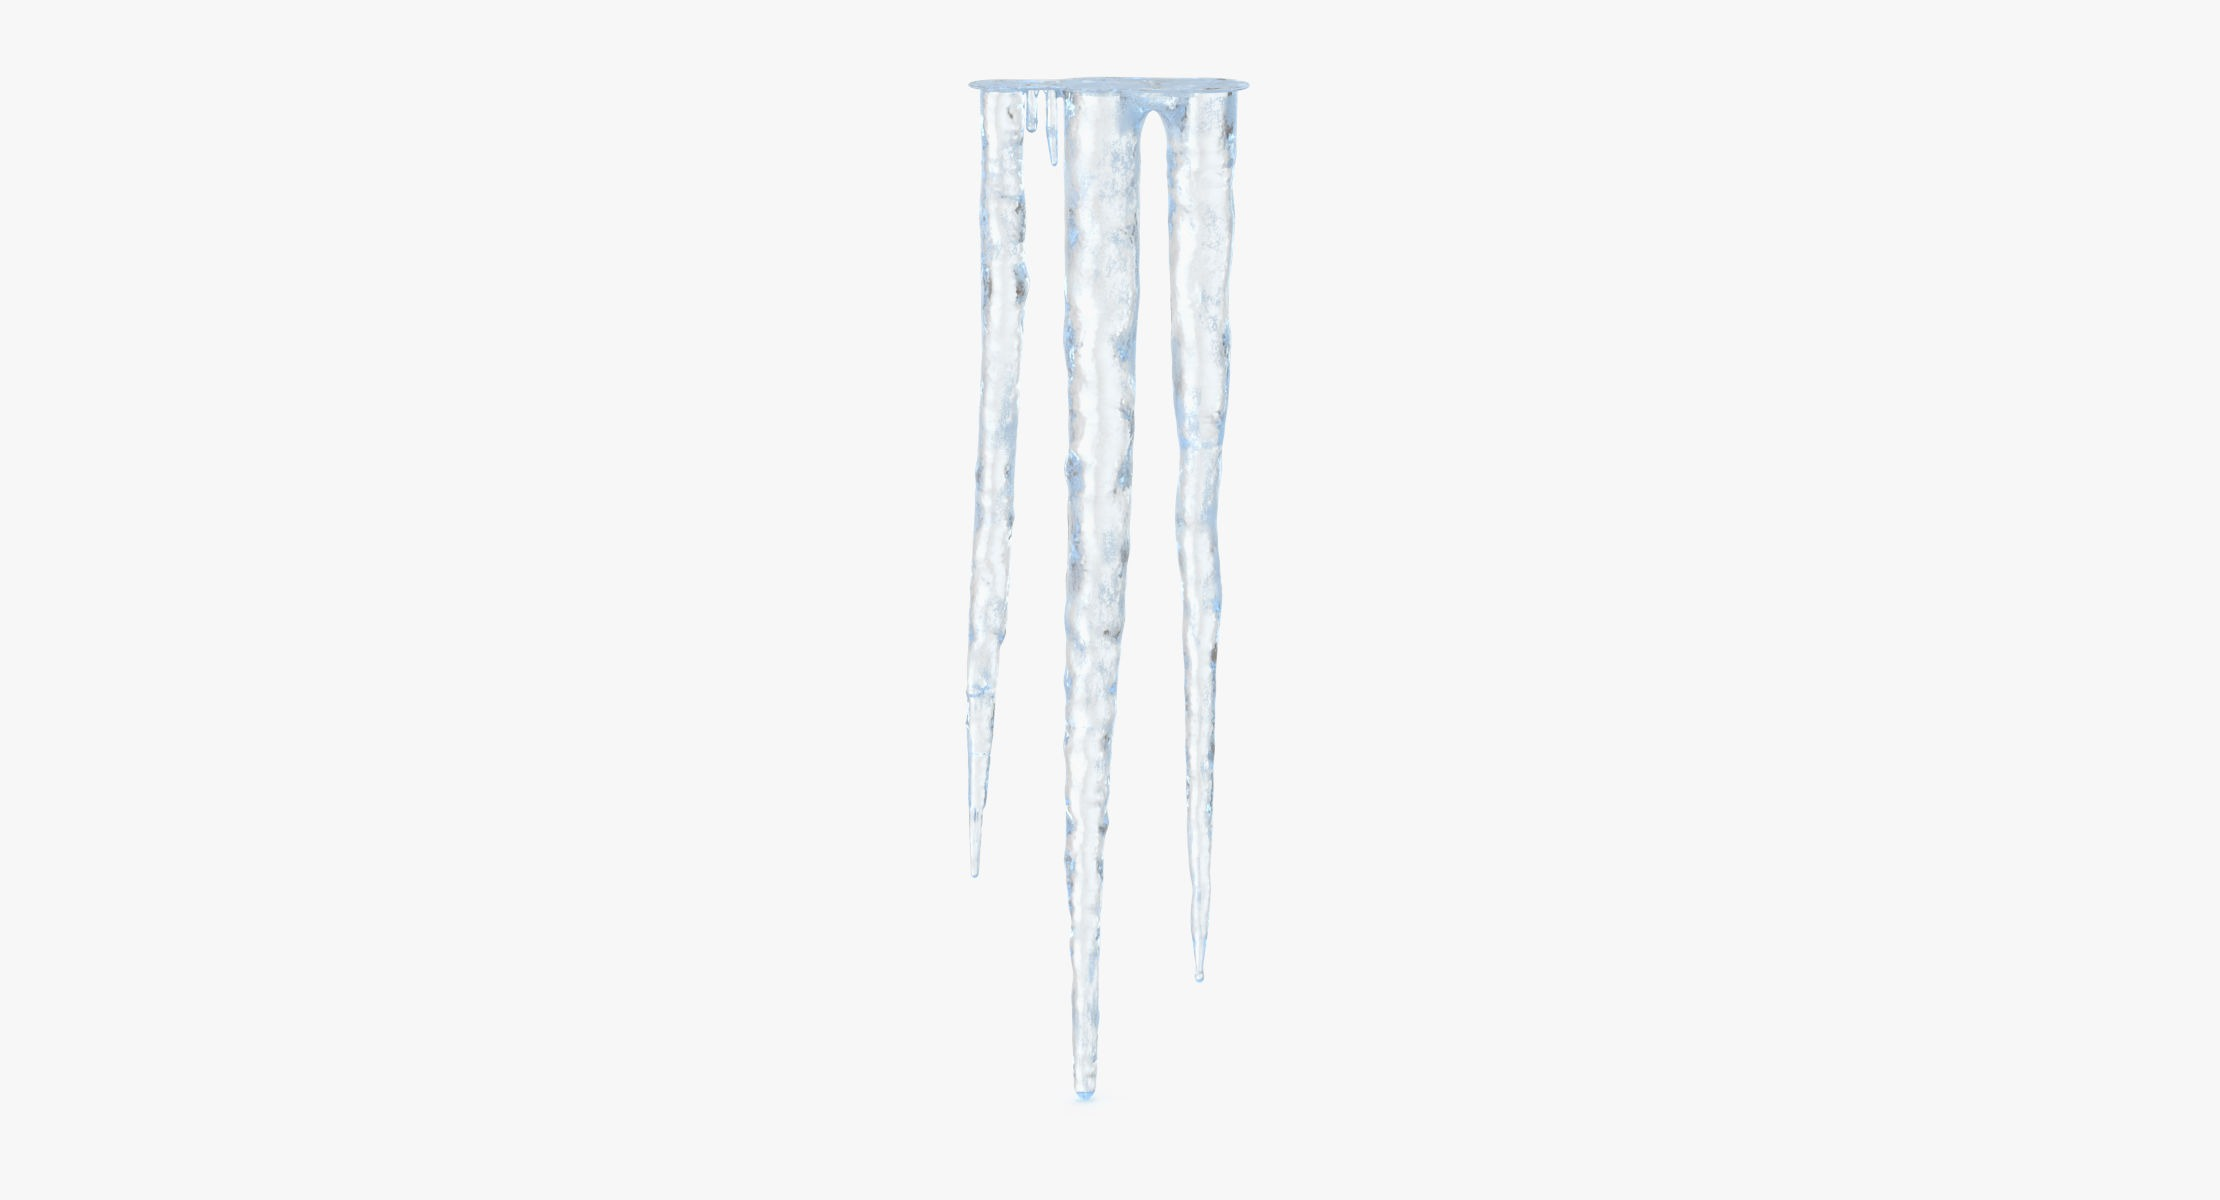 Icicles 01 - reel 1